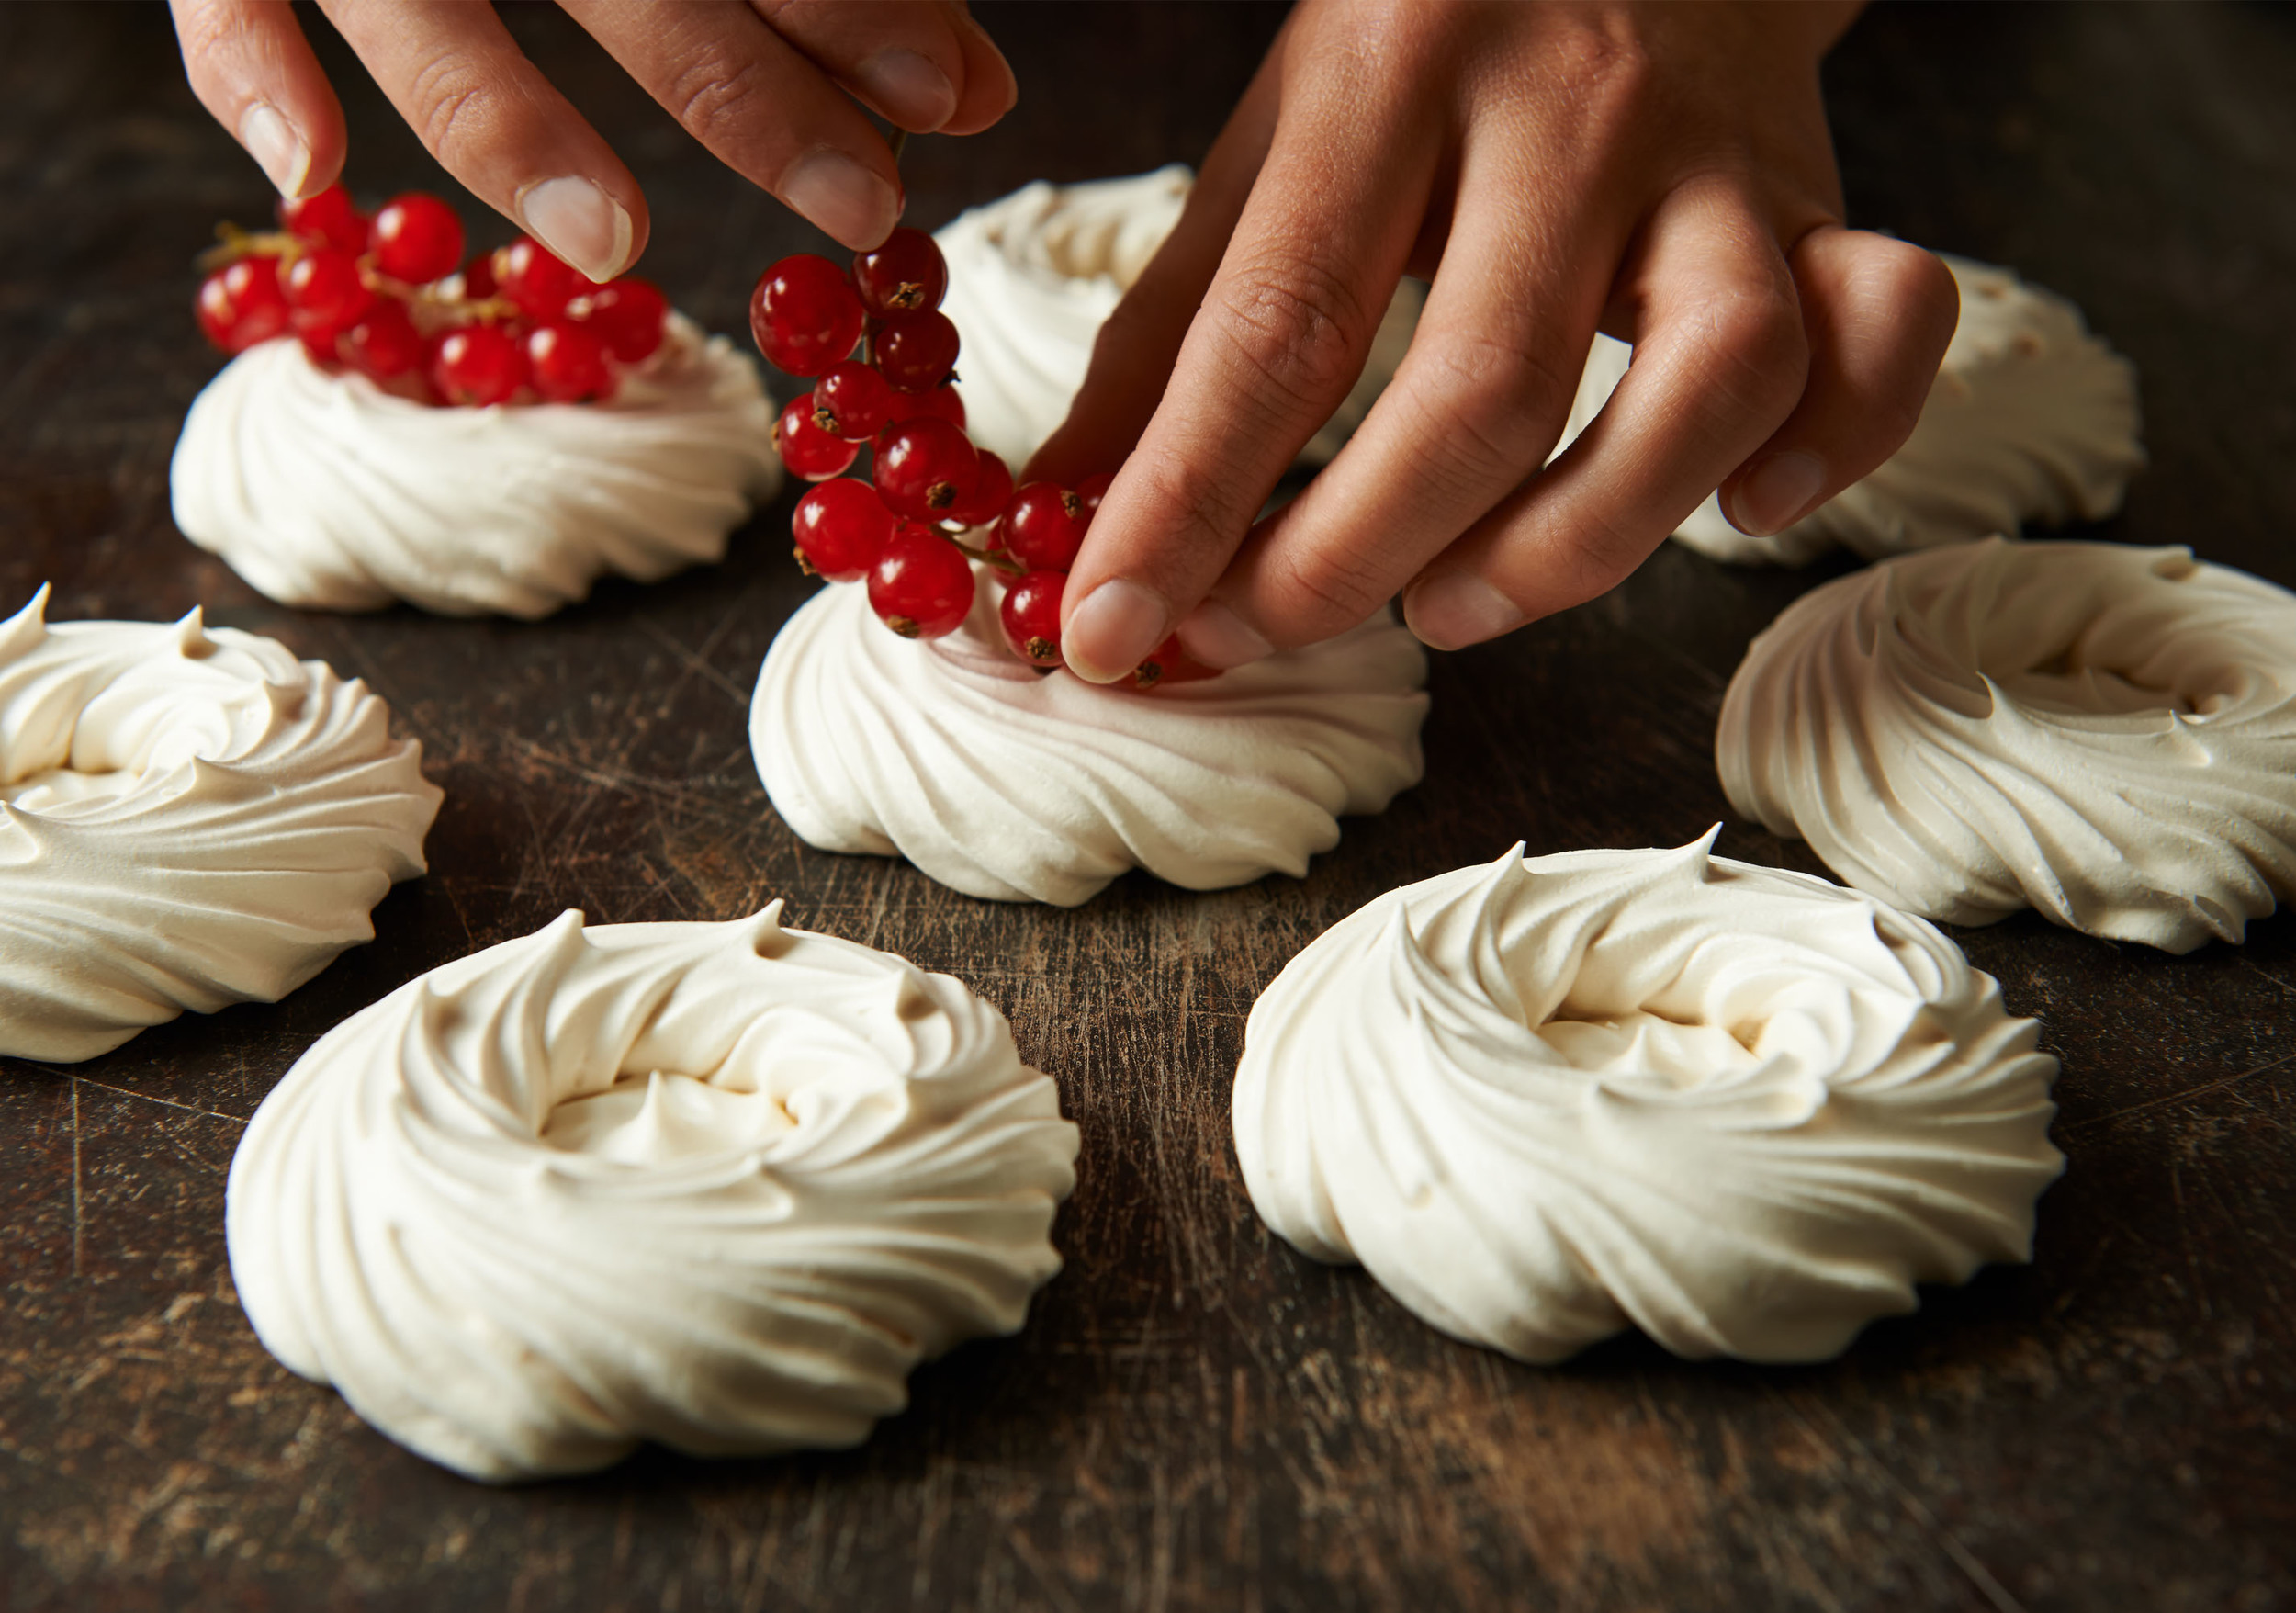 meringues being decorated with redcurrants